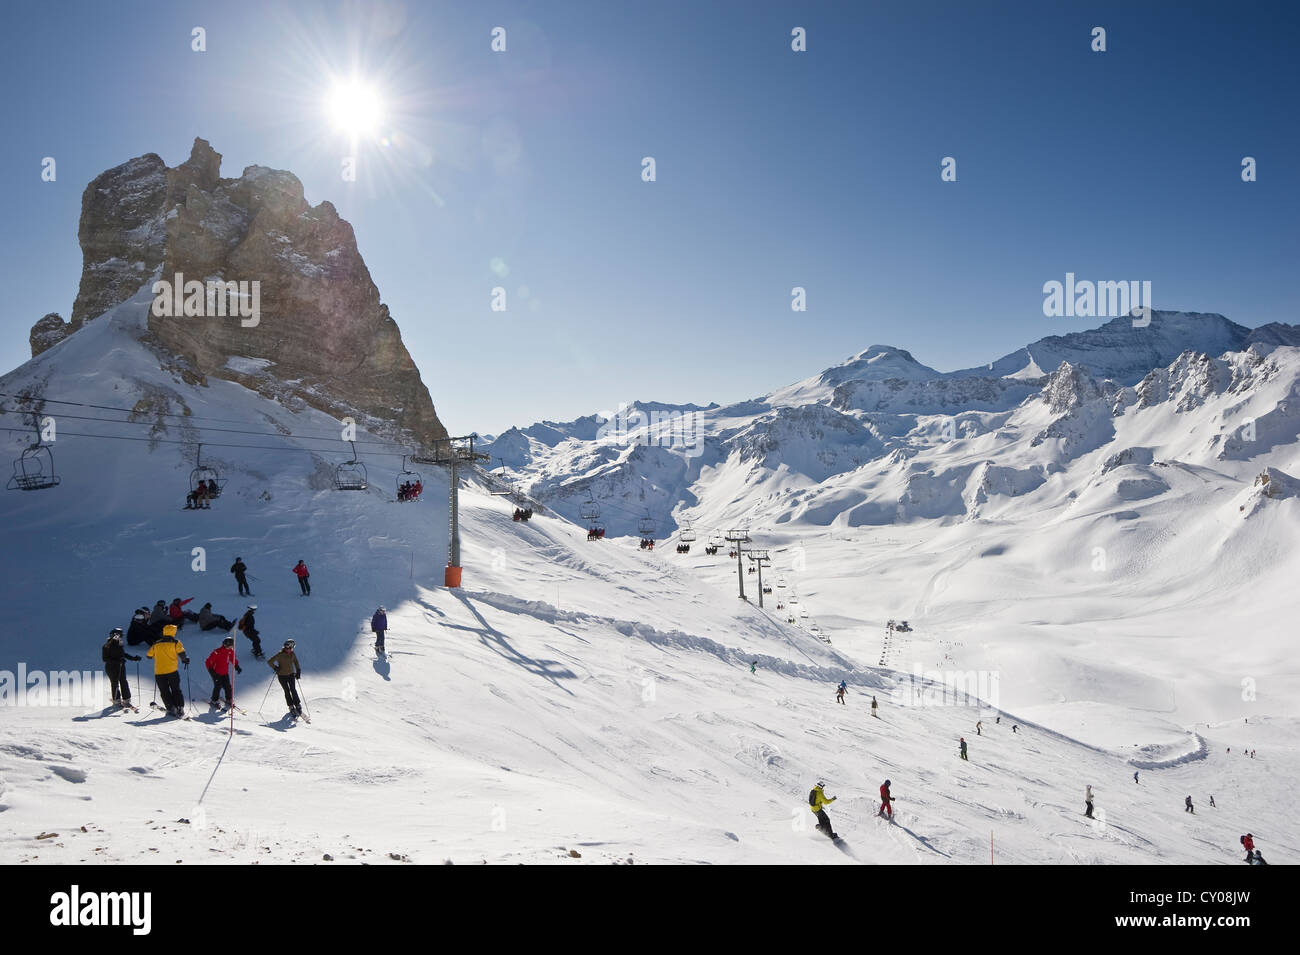 Skiing area, Aiguille Percee, Tignes, Val d'Isere, Savoie, Alps, France, Europe - Stock Image